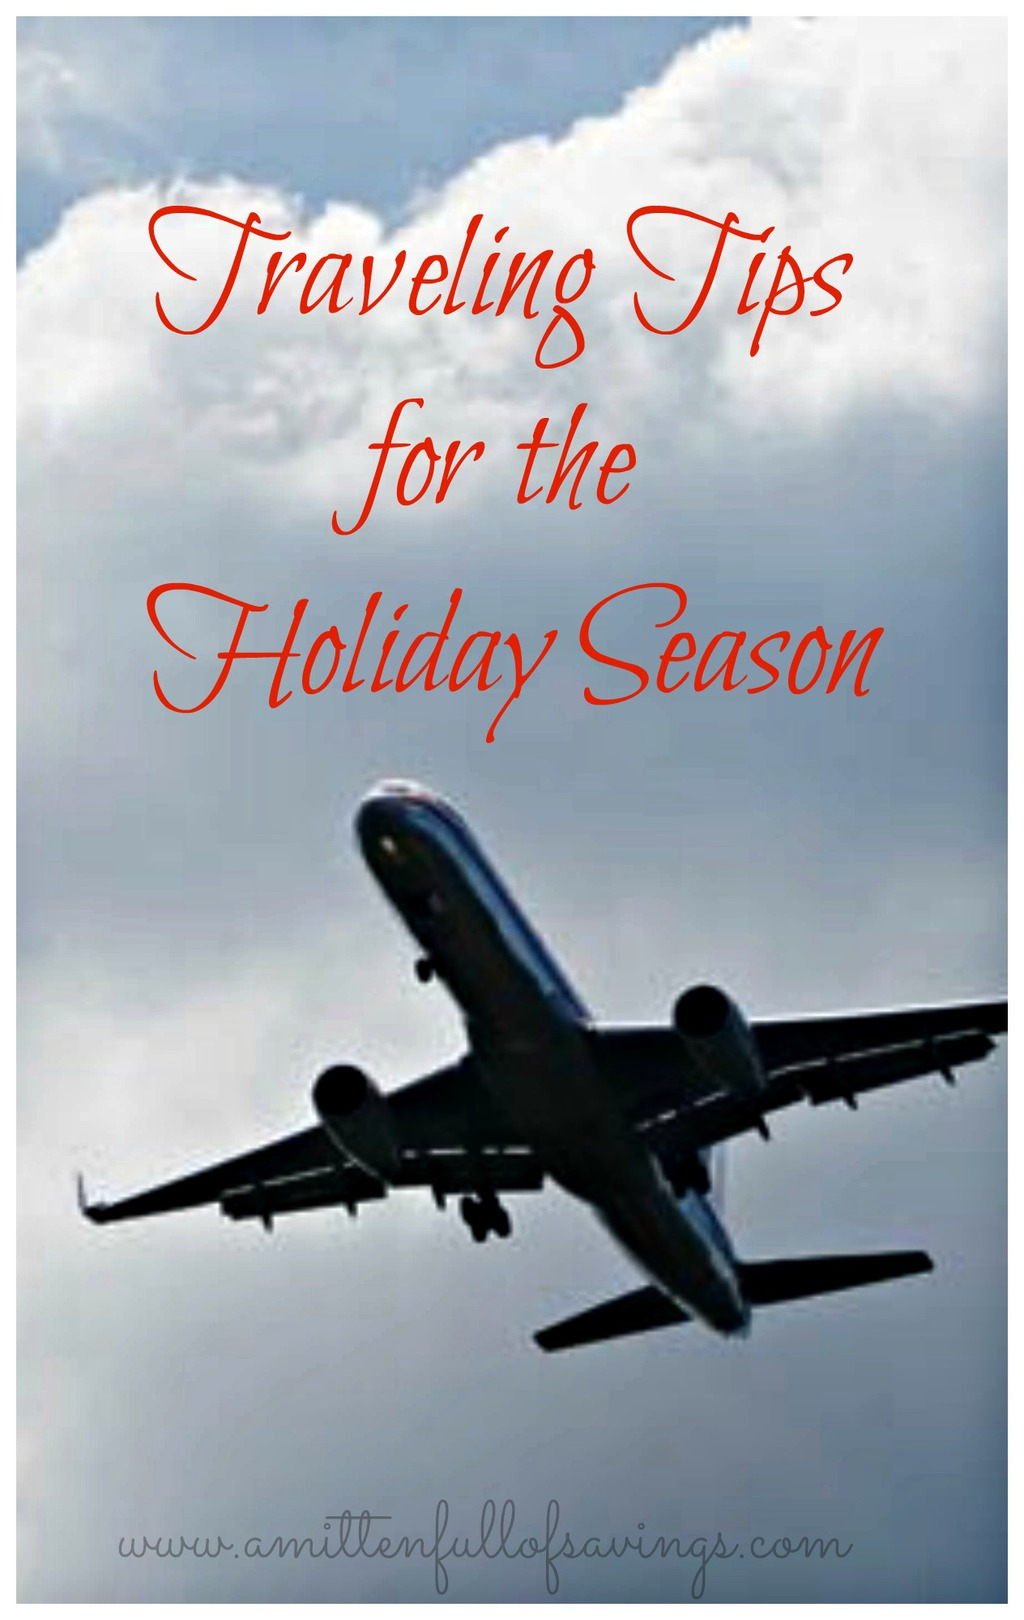 If you have plans to travel this Thanksgiving, I have some great travel tips to share! My traveling tips for the Thanksgiving holiday will save you time and money.